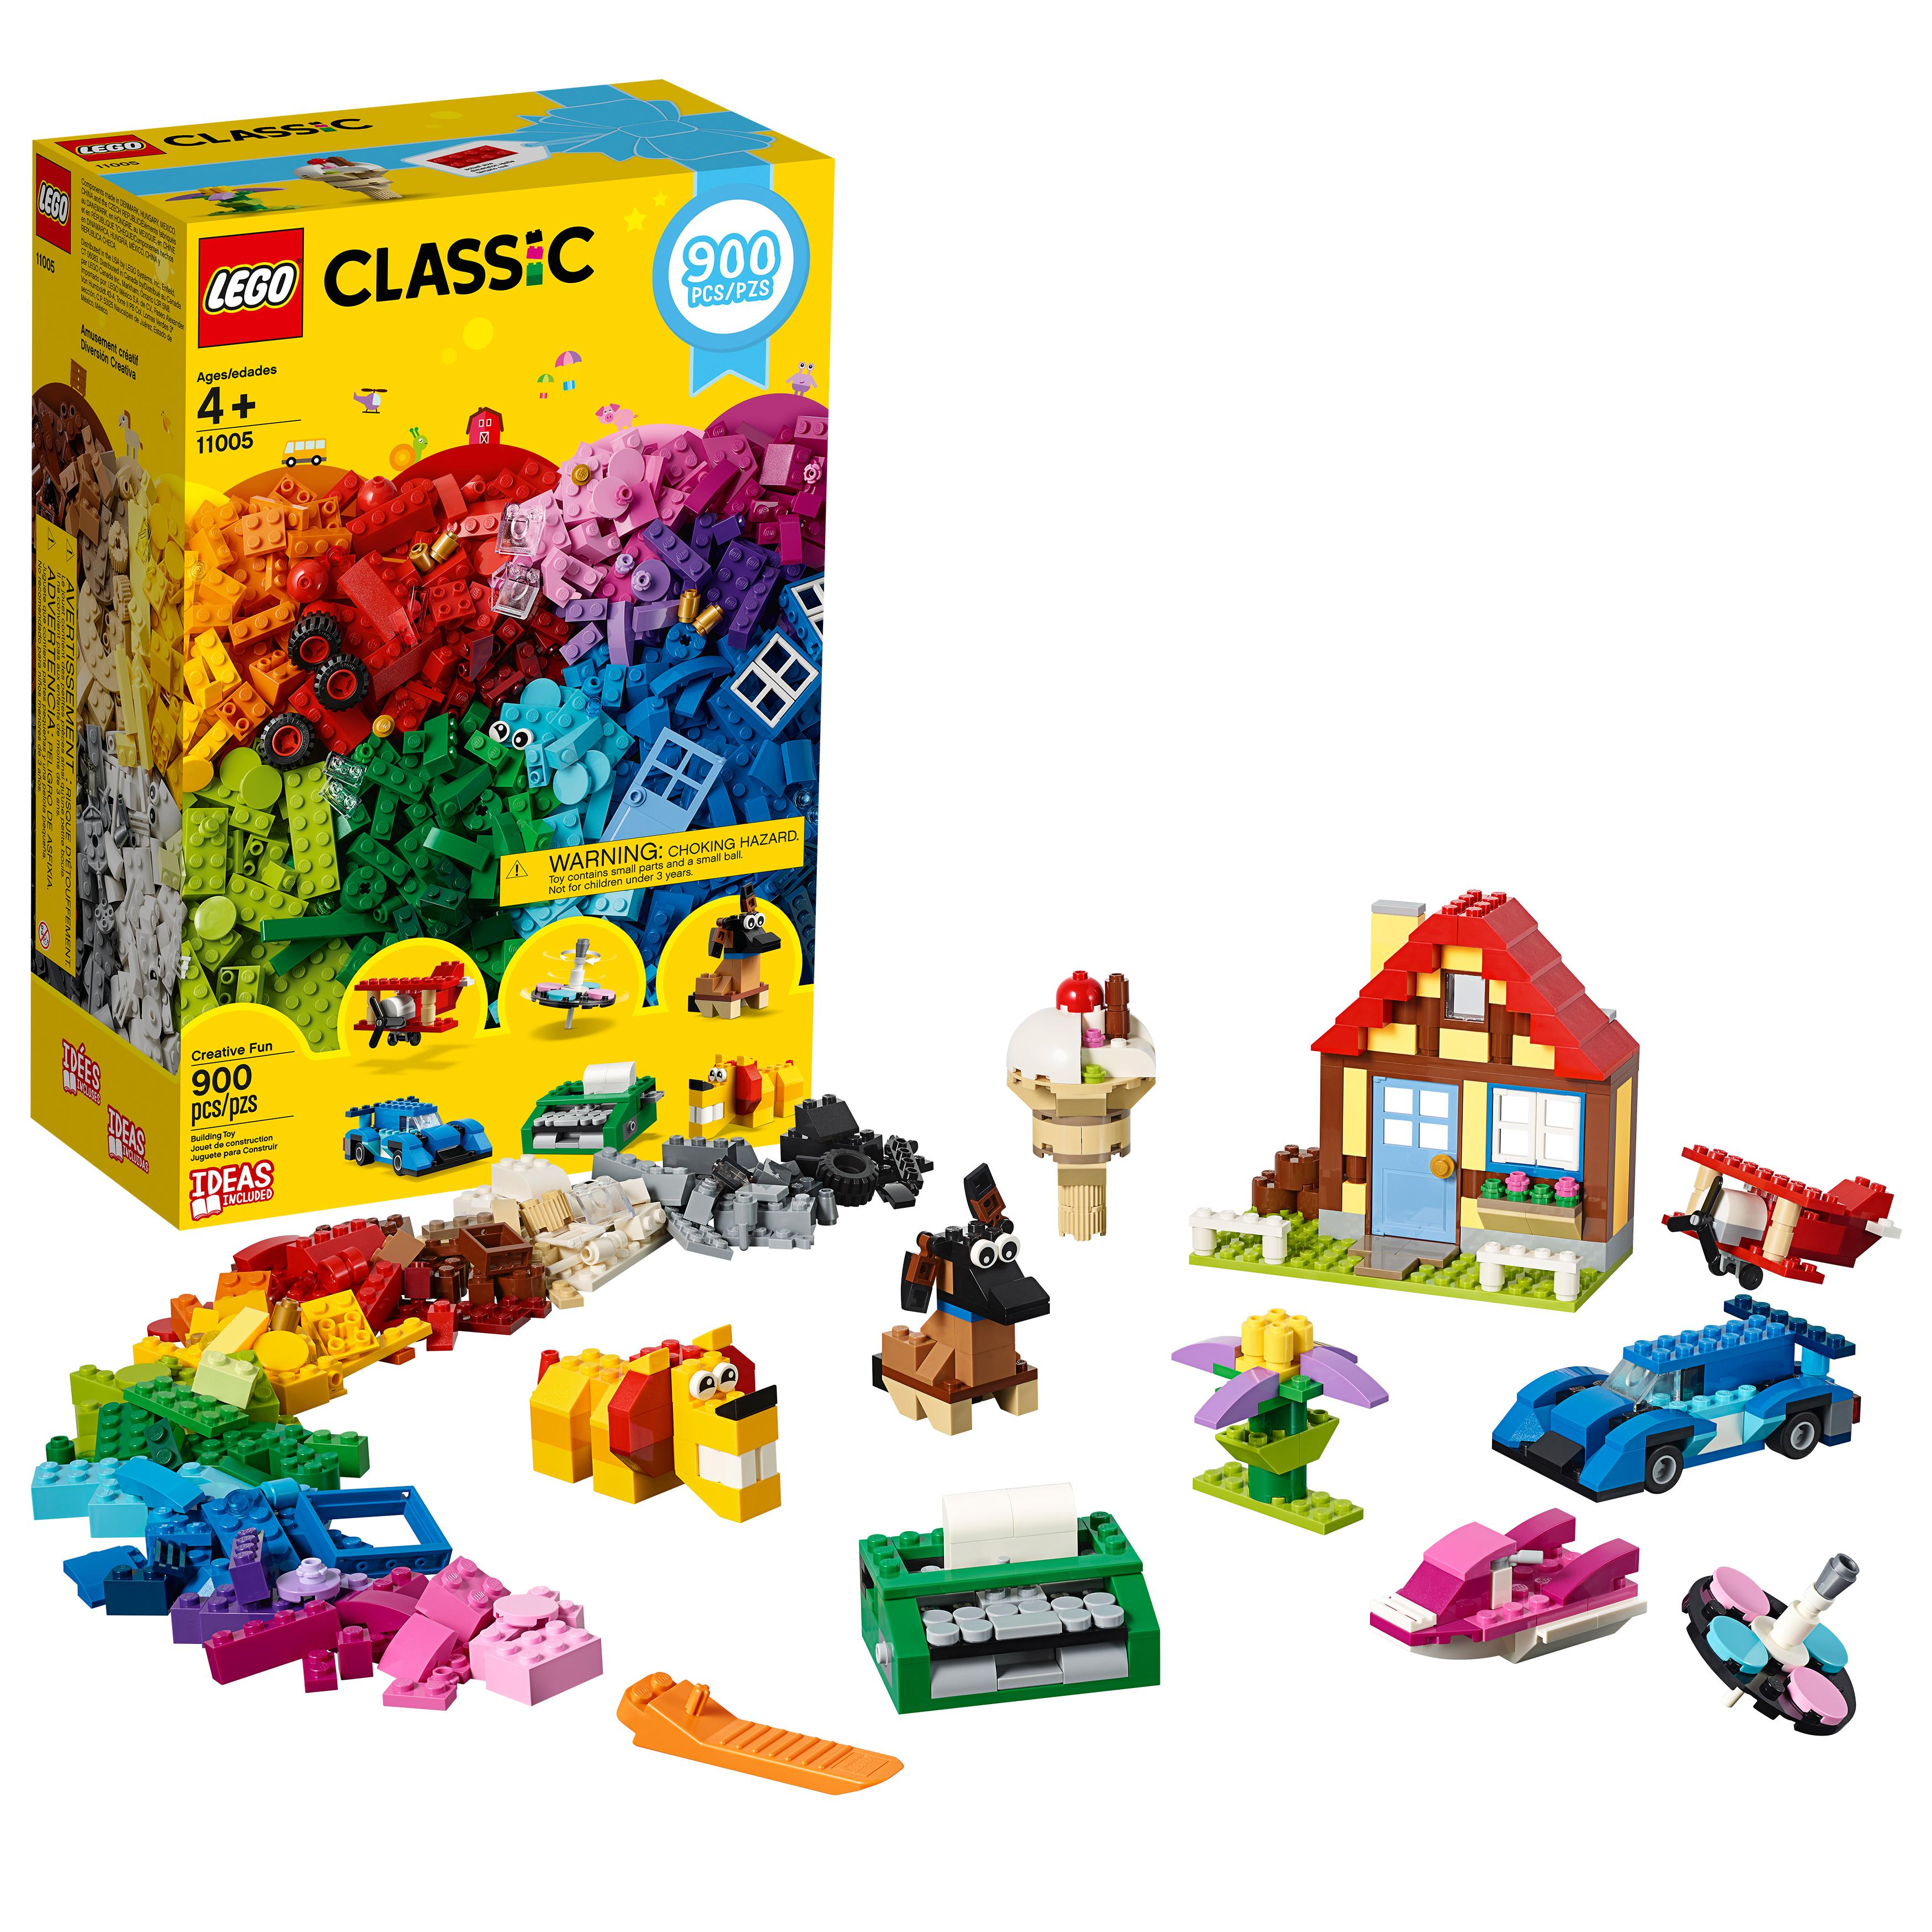 5 Lego Mixed Flowers NEW!